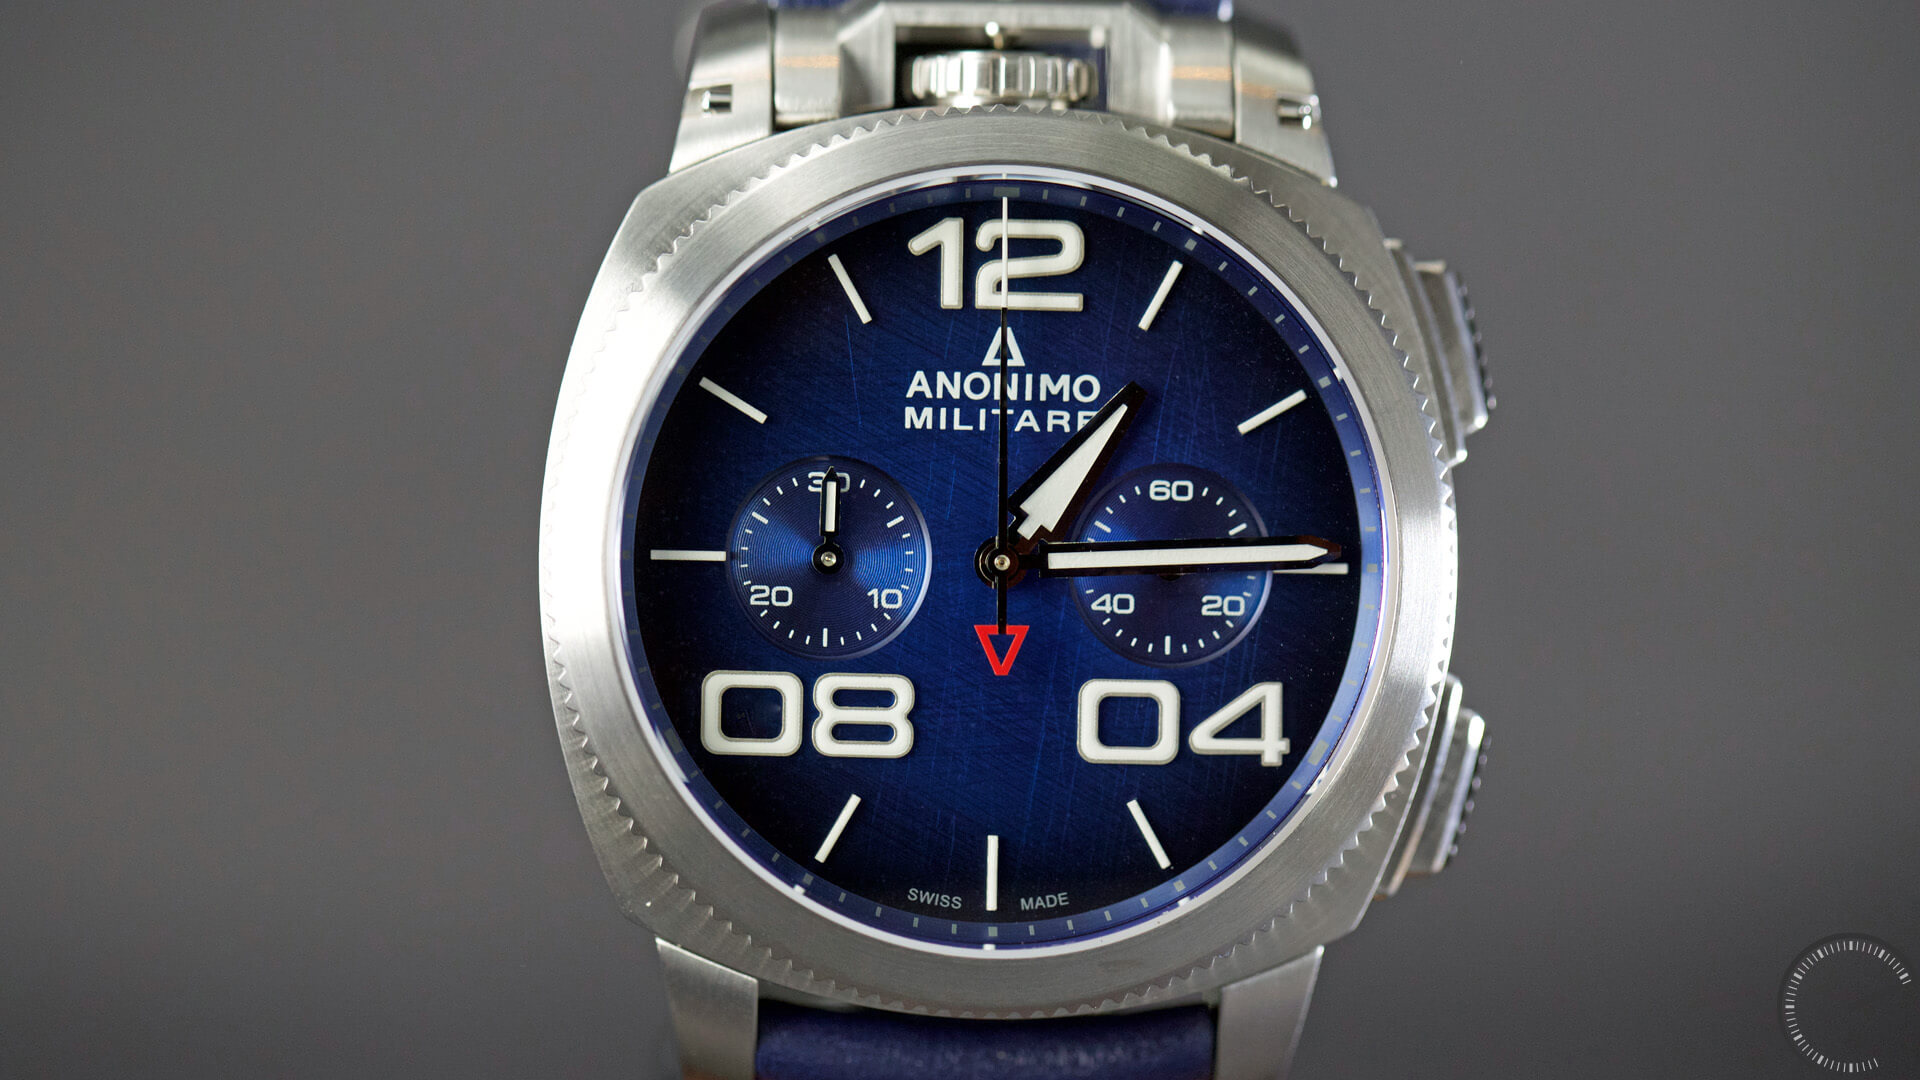 Anonimo_Militaire_Classic_Chrono_blue_dial_case2 - ESCAPEMENT magazine - watch reviews by Angus Davies